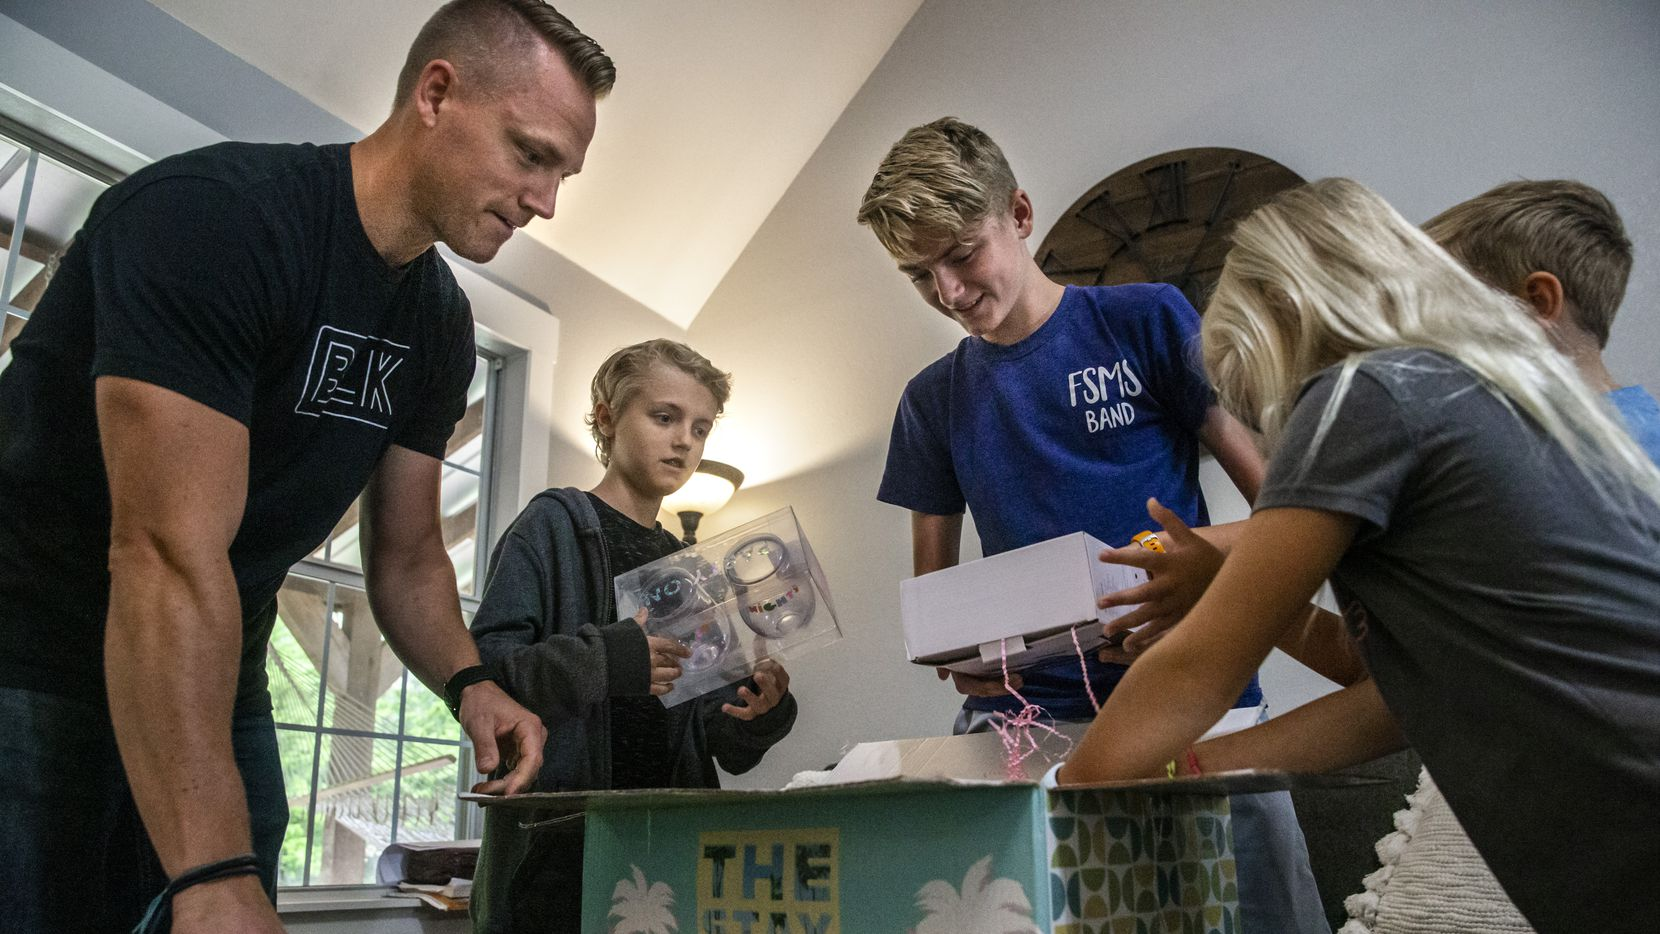 Match.com affinity design team lead James Walker (left) and his children Cade, 11, Boston, 14, Hudson, 9, and Avery, 7, open a themed gift box from the company at their home in Midlothian.